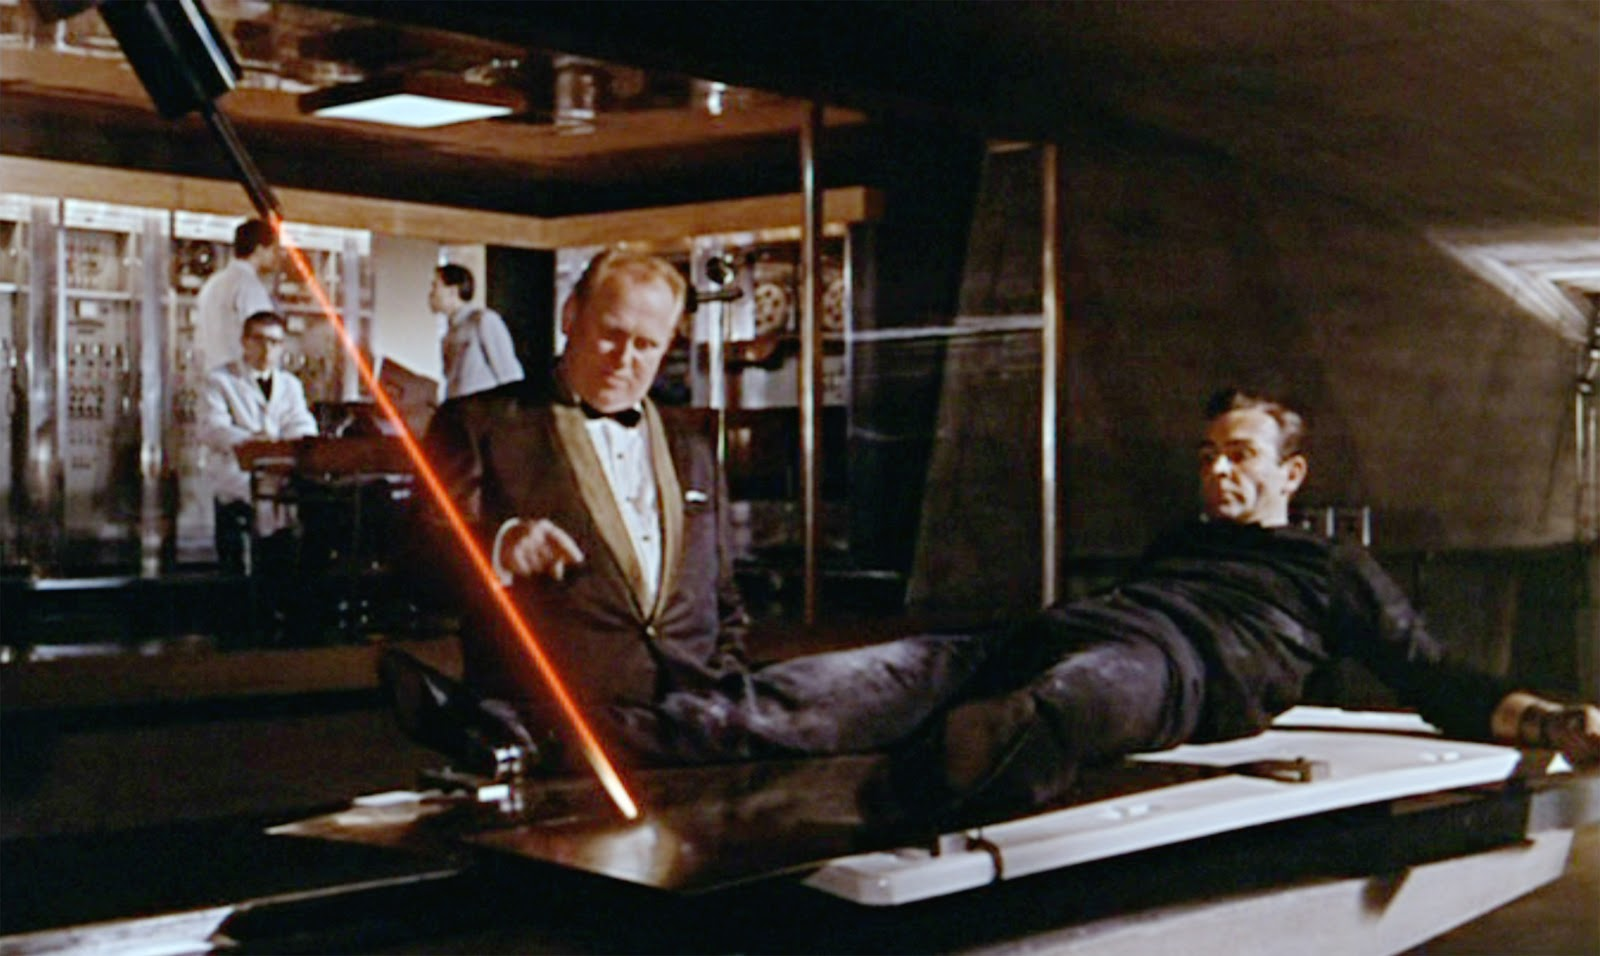 A man in all black (James Bond) is strapped to a table as another man in a golden suit (Goldfinger) overlooks. A large red laser is cutting through the table.